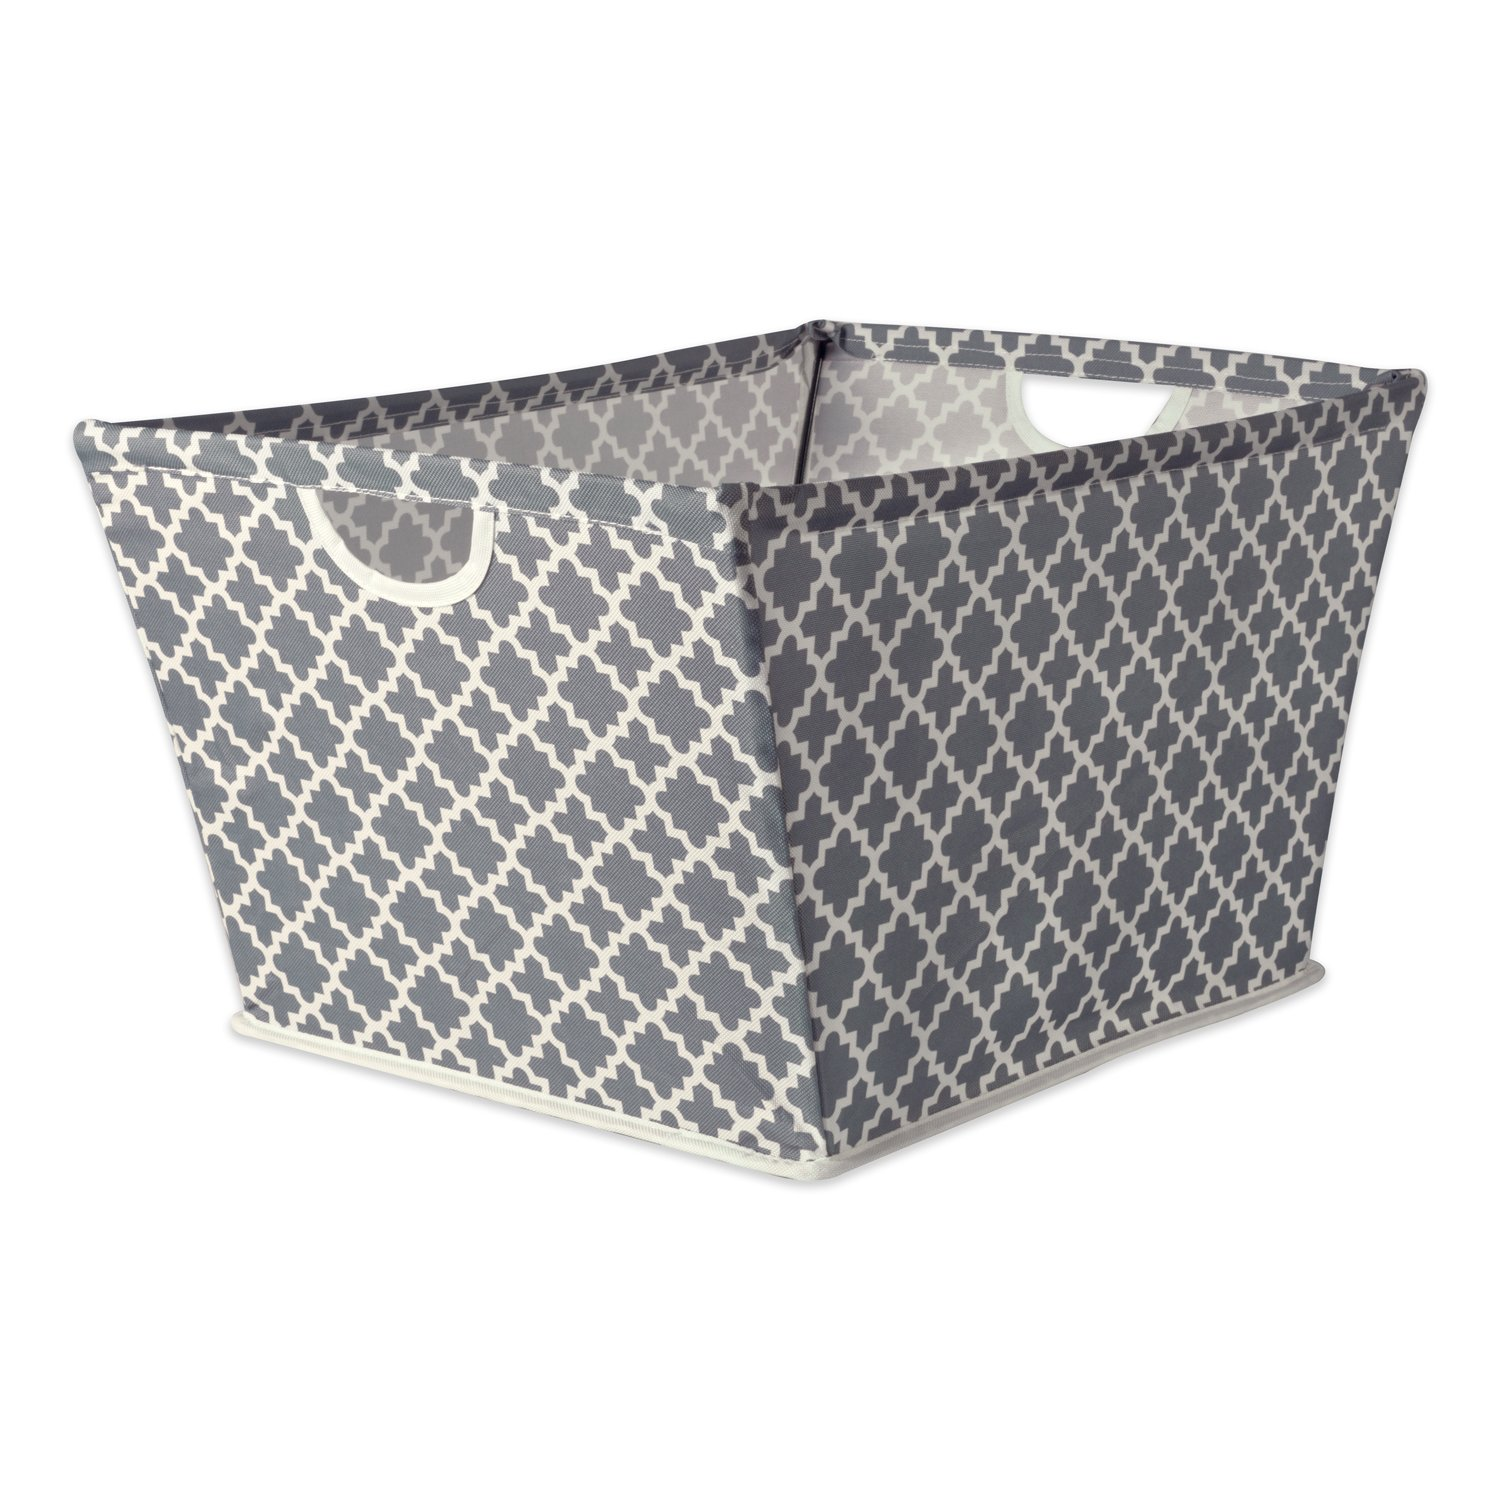 DII Collapsible Polyester Trapezoid Storage Basket, Home Organizational Solution for Office, Bedroom, Closet, & Toys (Large - 20x14x11'') Gray Lattice